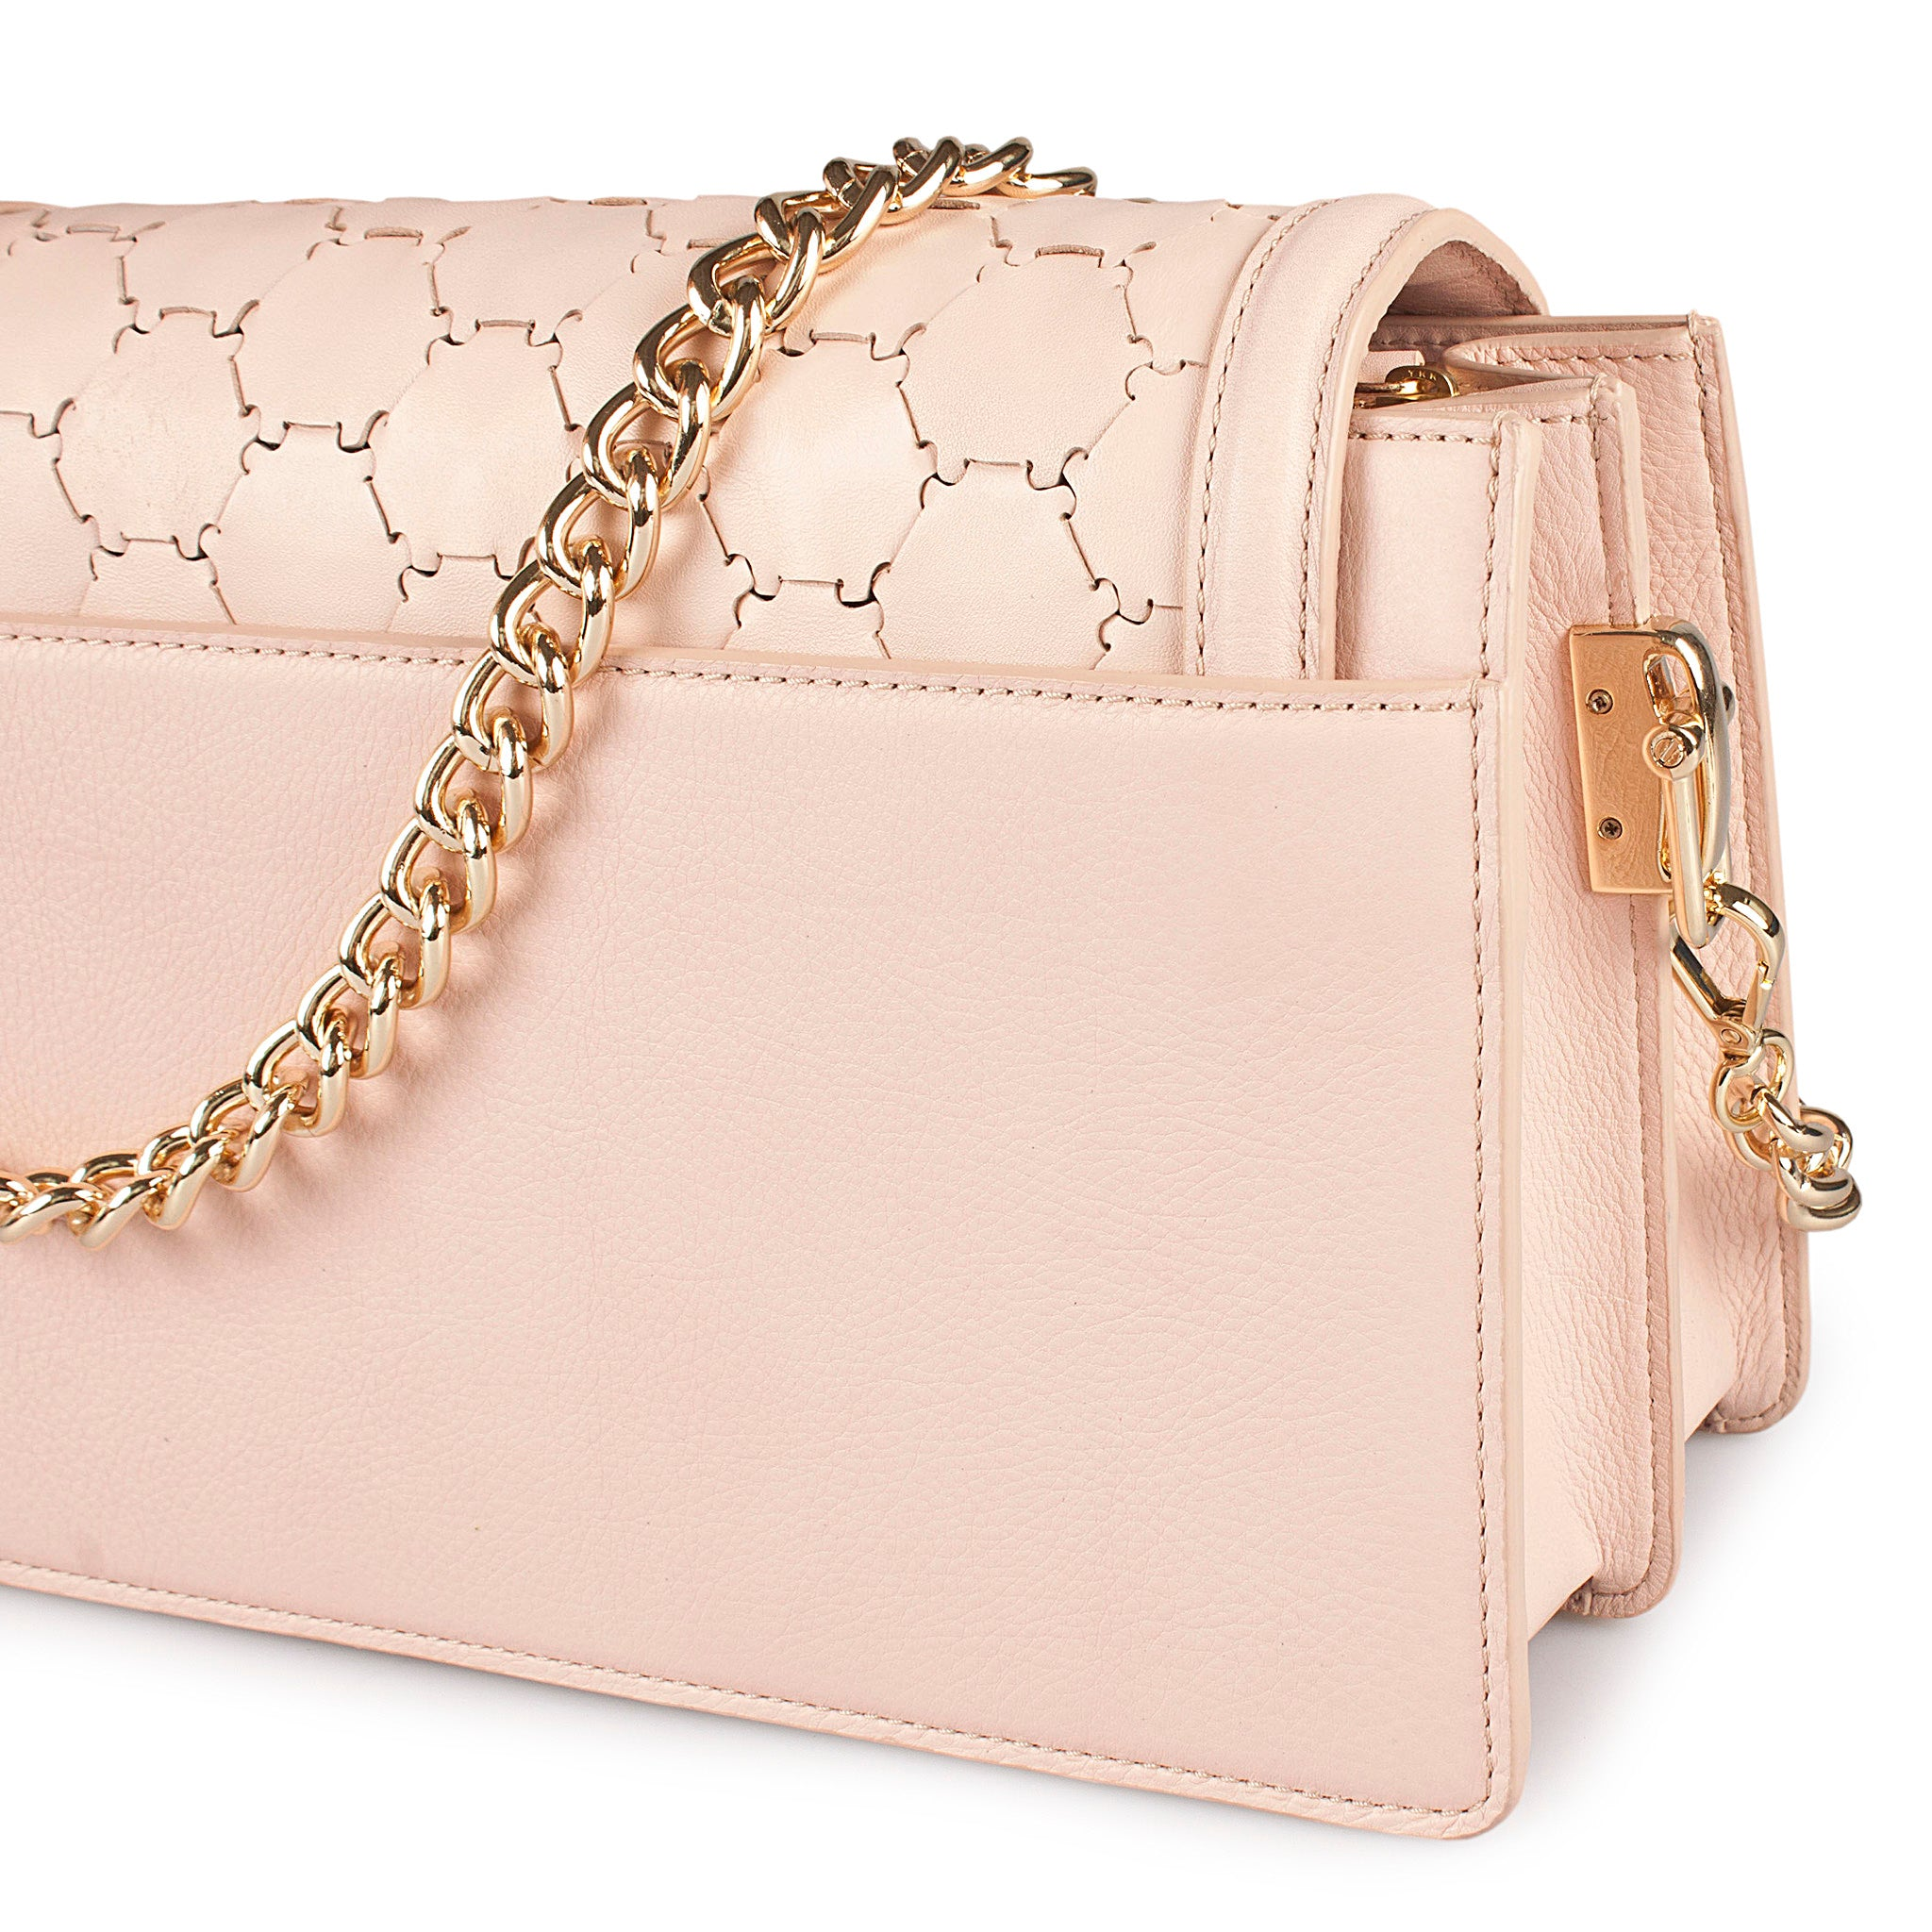 pink luxury leather crossbody bag with handwoven flap and chain handle detail